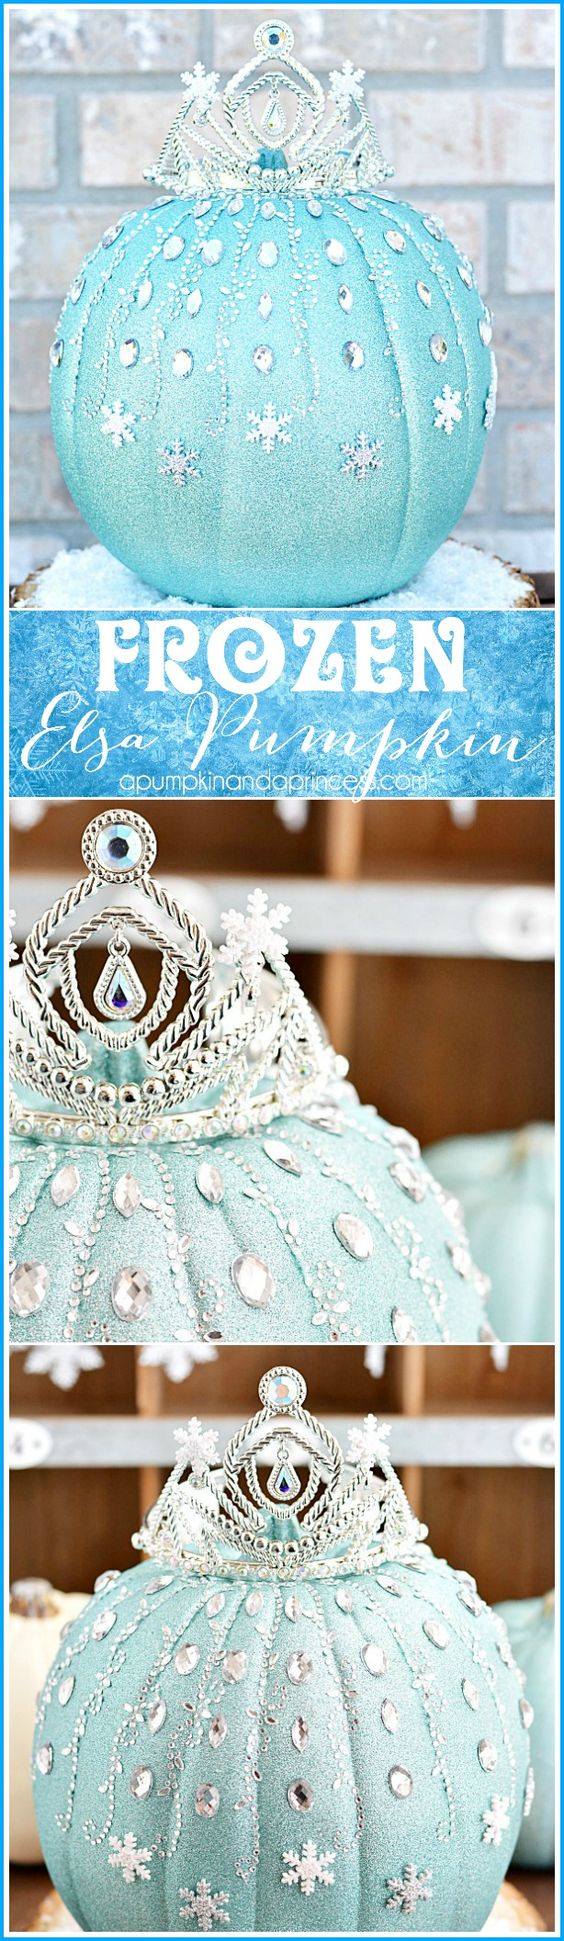 DIY Disney Frozen Elsa Pumpkin ~ a sparkly pumpkin made with glitter, rhinestones, and snowflakes that every little princess will enjoy!